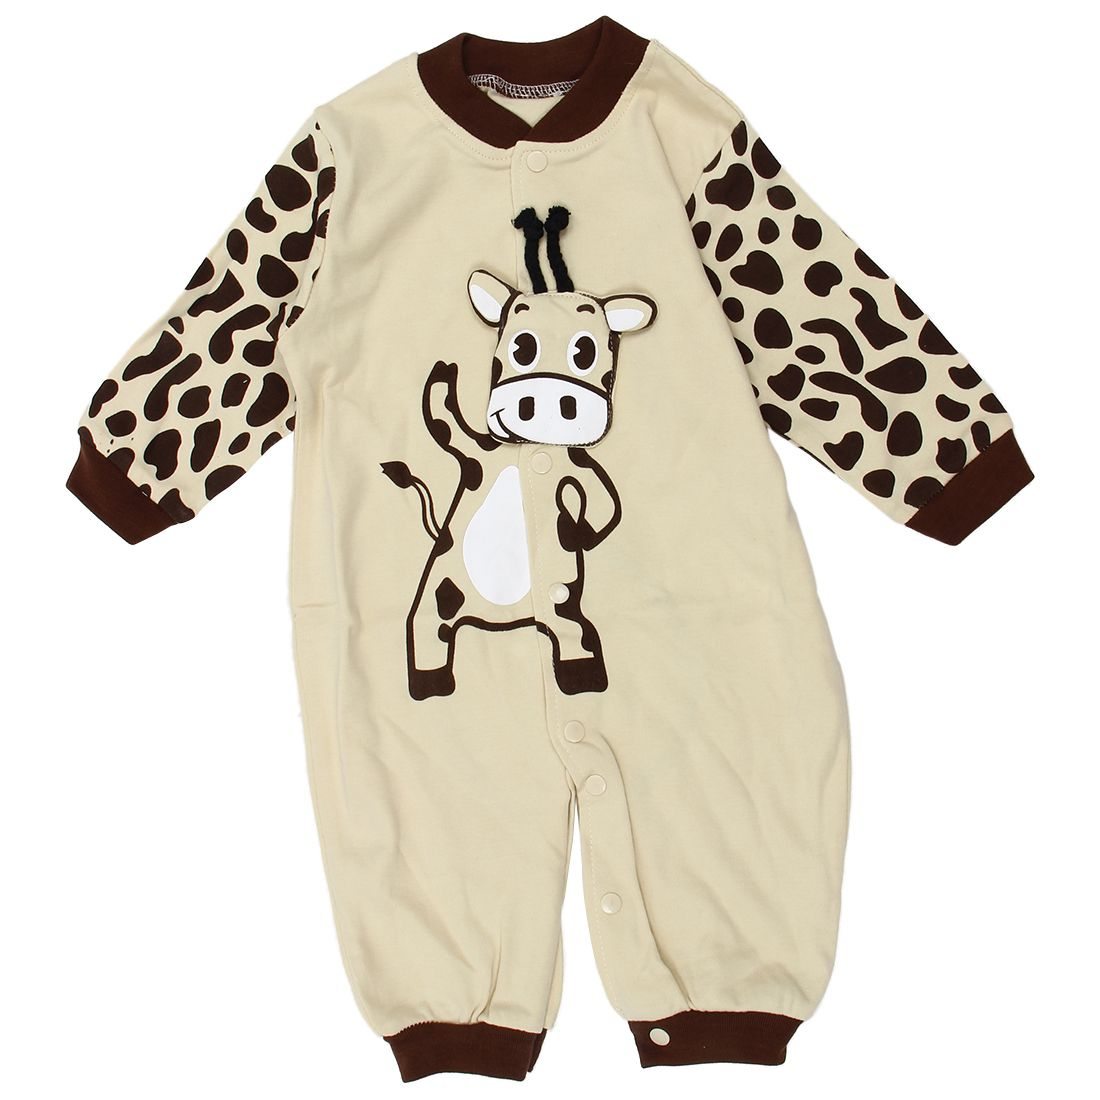 Cow Newborn Girls Boys Clothes Jumpsuit Baby Outfit Infant Romper Clothes